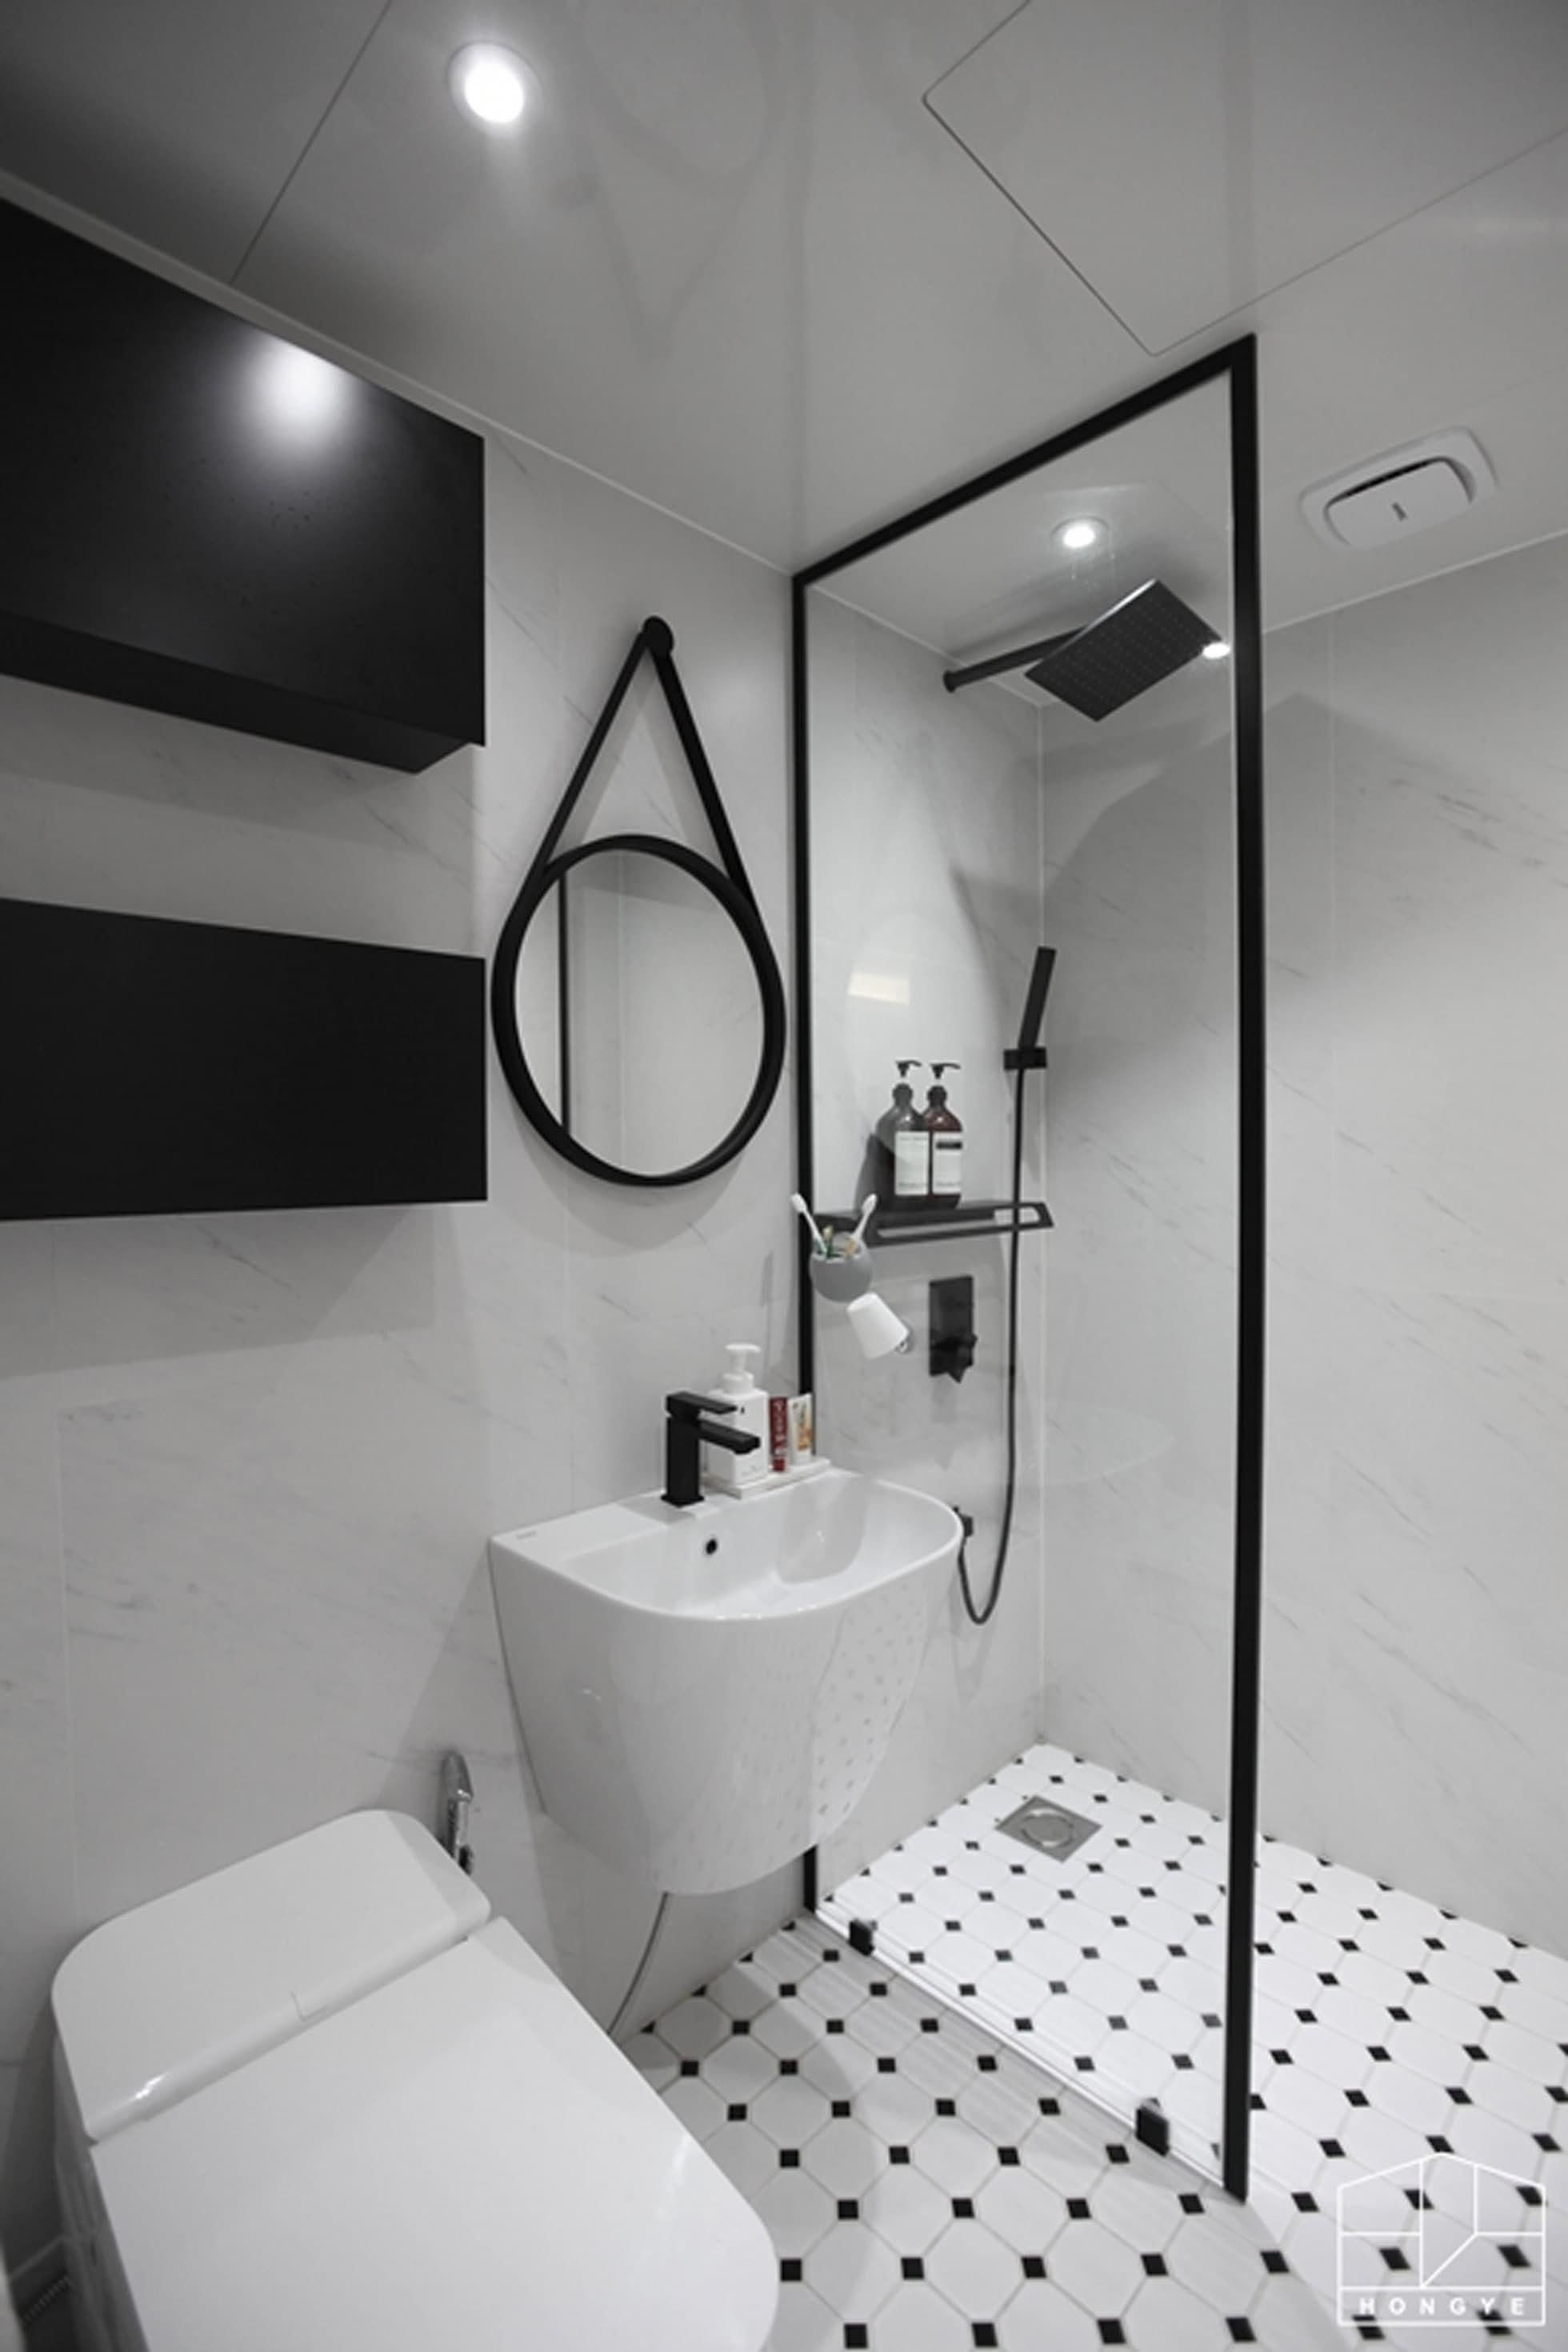 Home Decoration Stores Near Me Itemsforhomedecoration Product Id 8031967024 In 2020 Bathroom Design Inspiration Bathroom Design Toilet Design